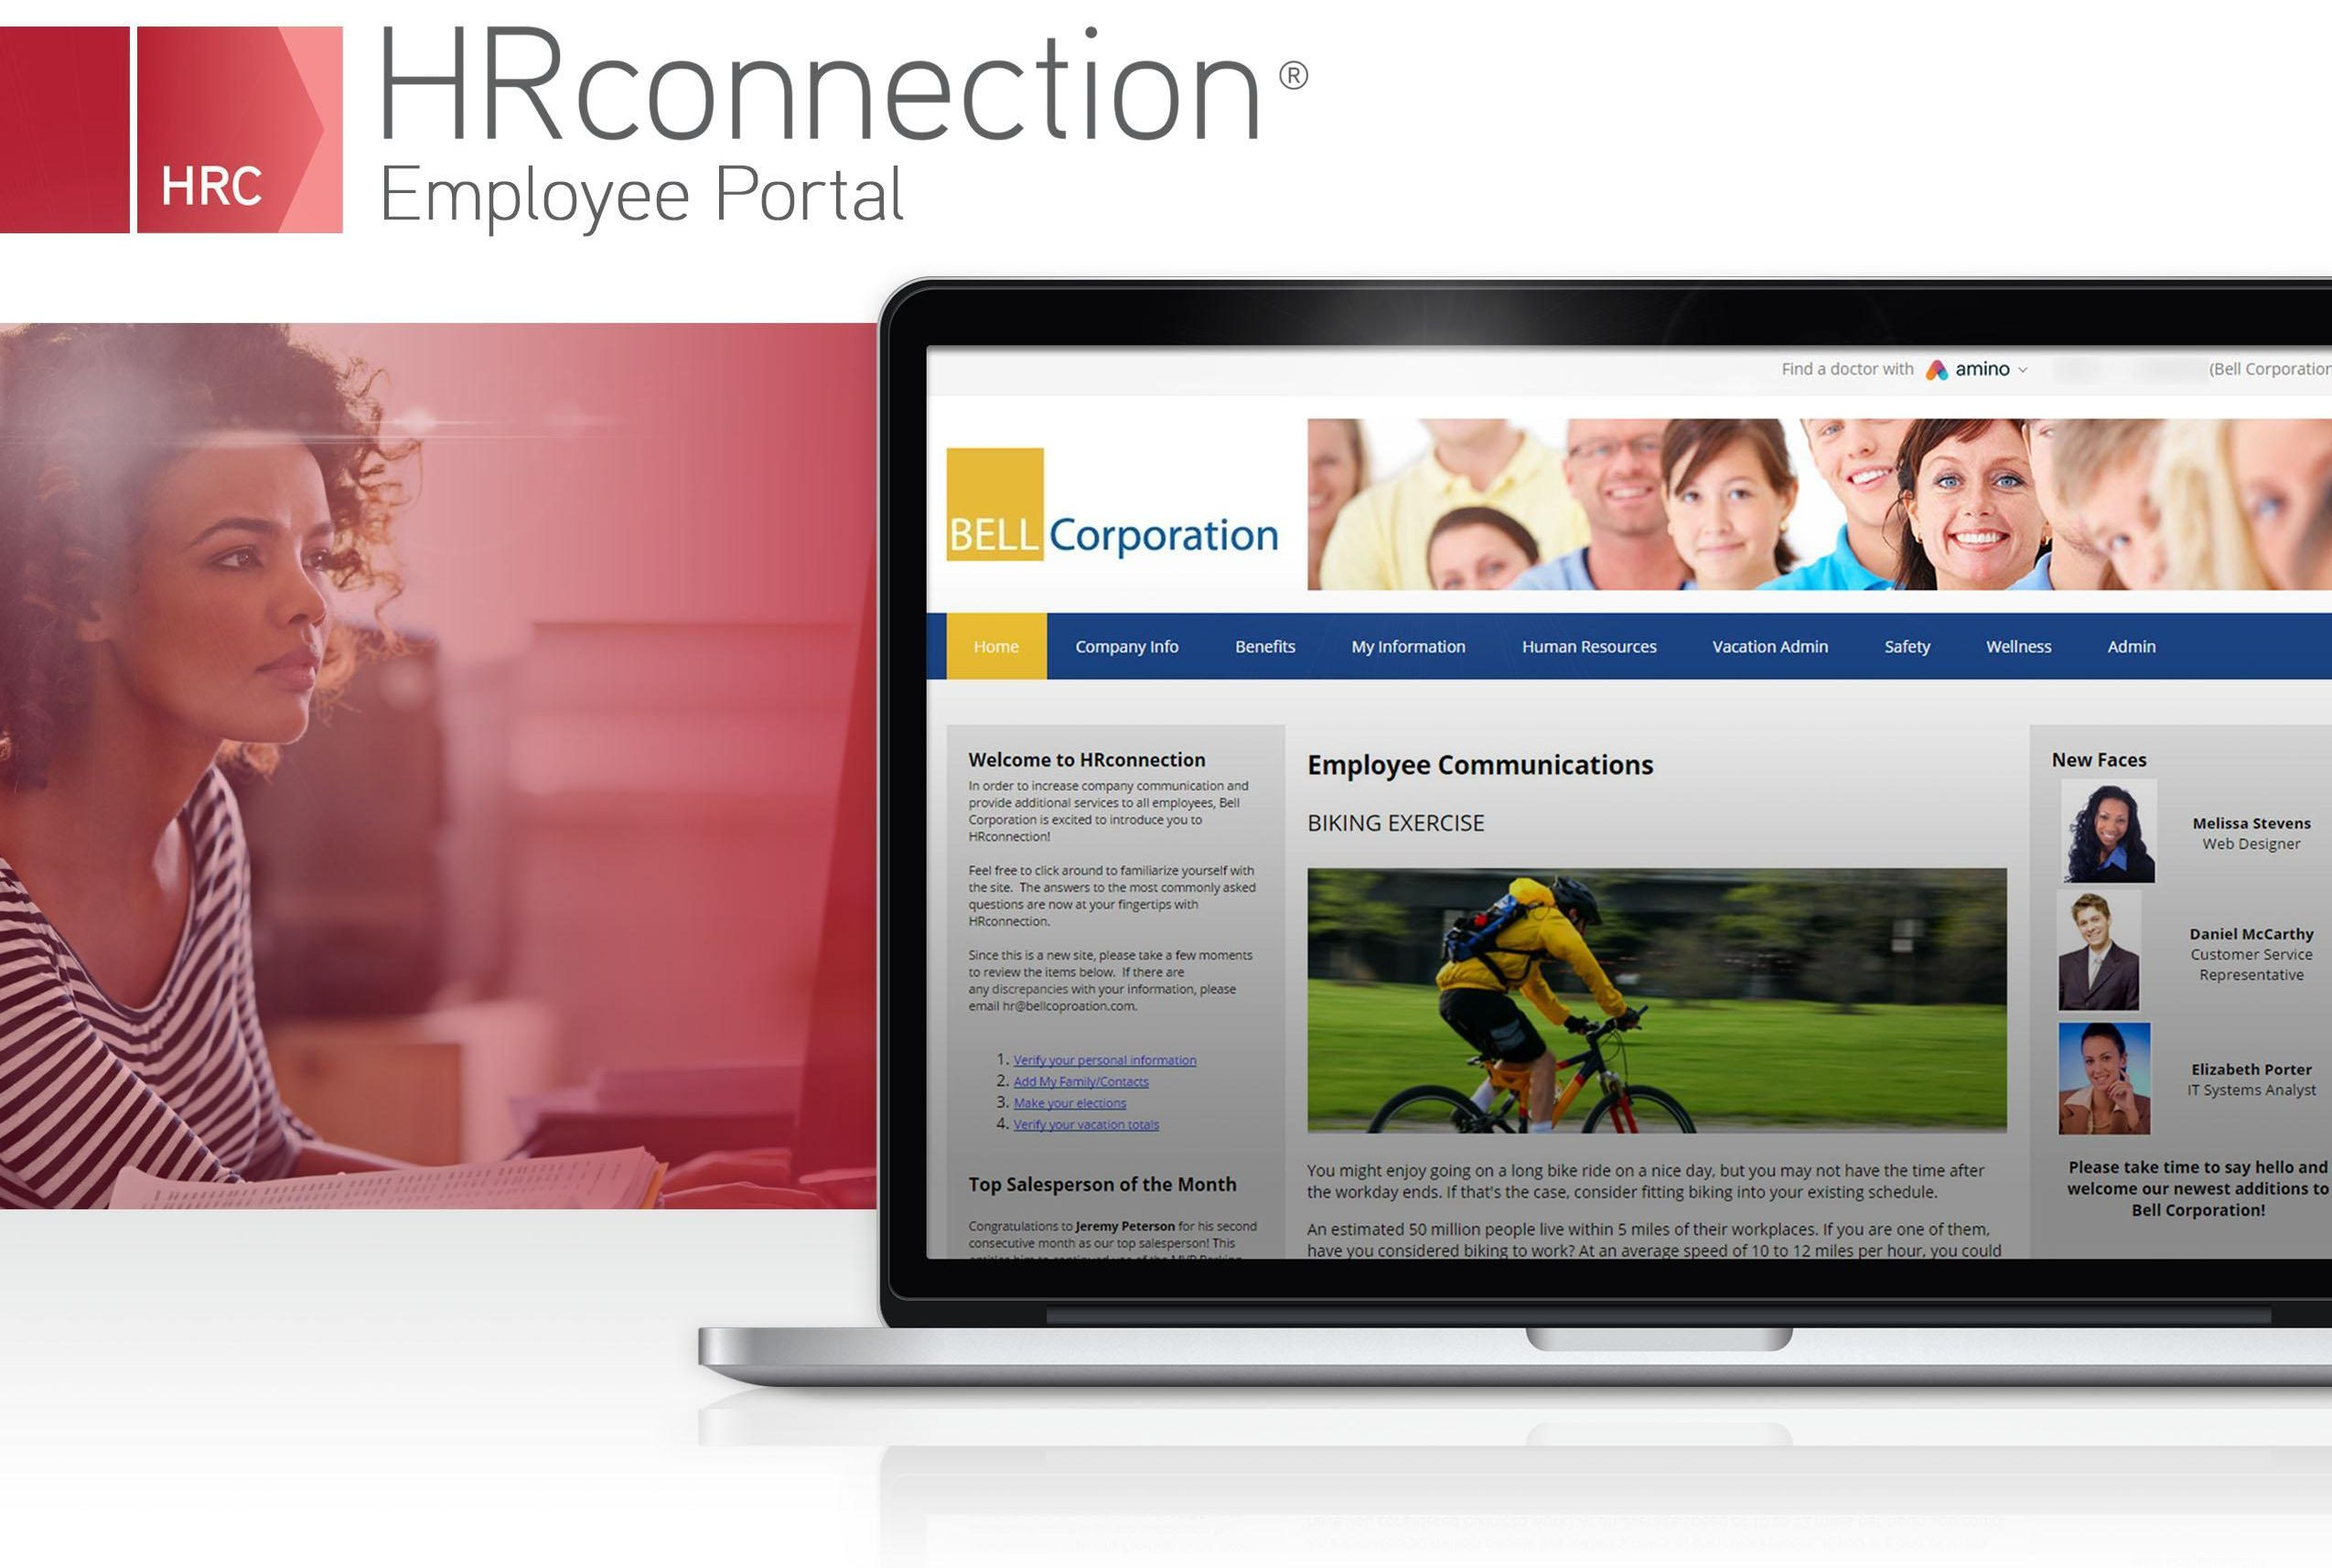 HR Connection